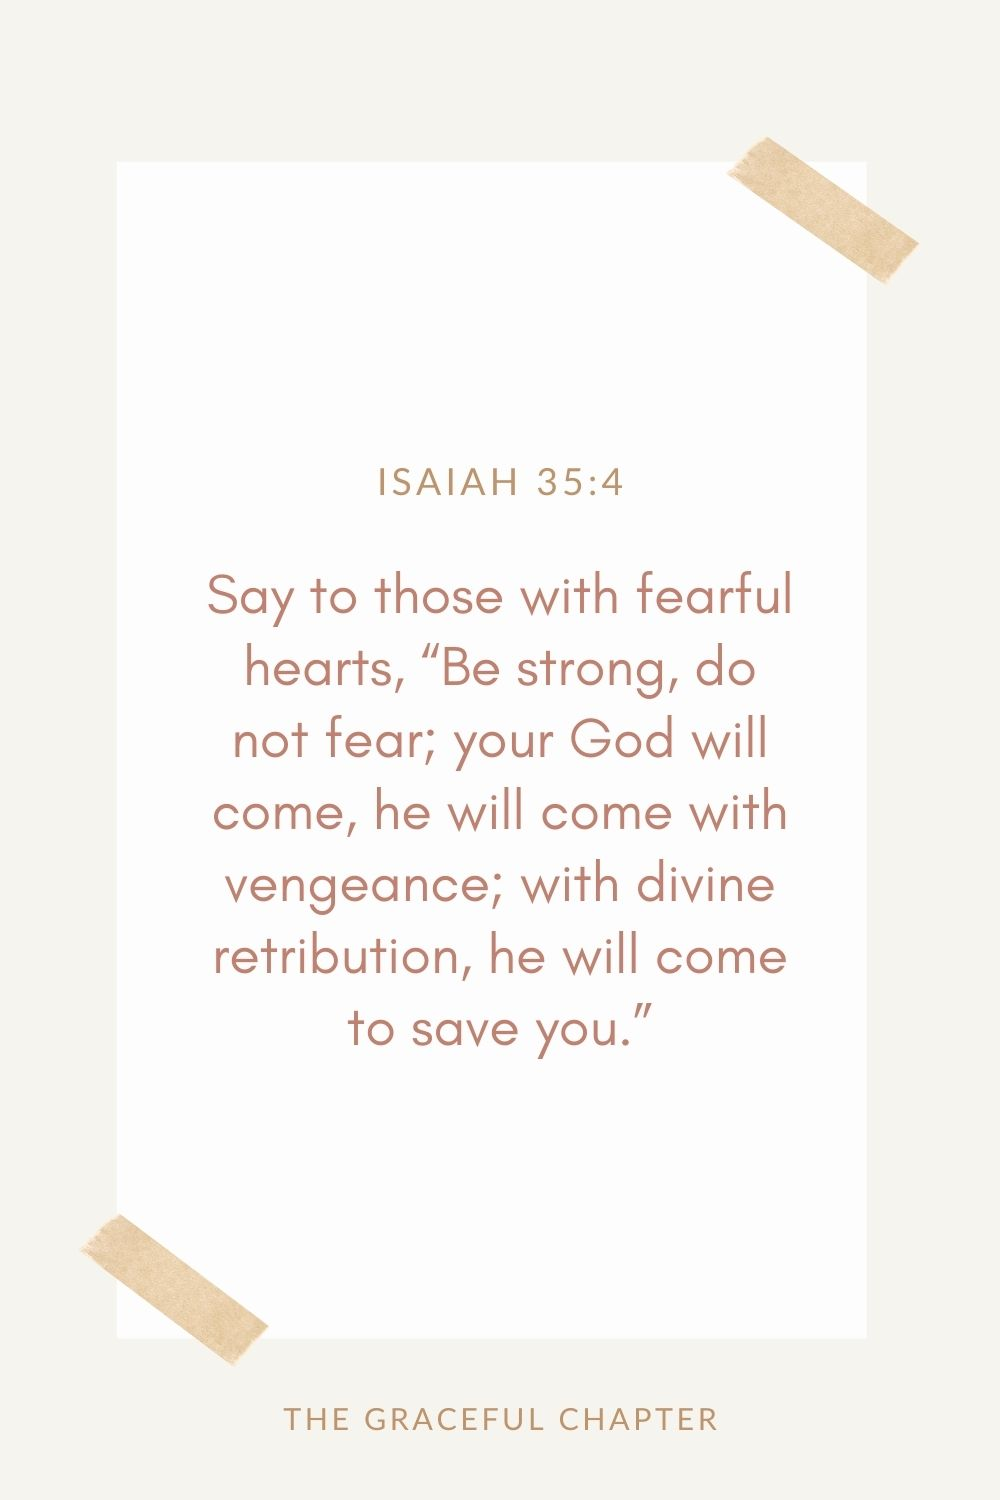 "Say to those with fearful hearts,  ""Be strong, do not fear; your God will come, he will come with vengeance; with divine retribution  he will come to save you."" Isaiah 35:4"